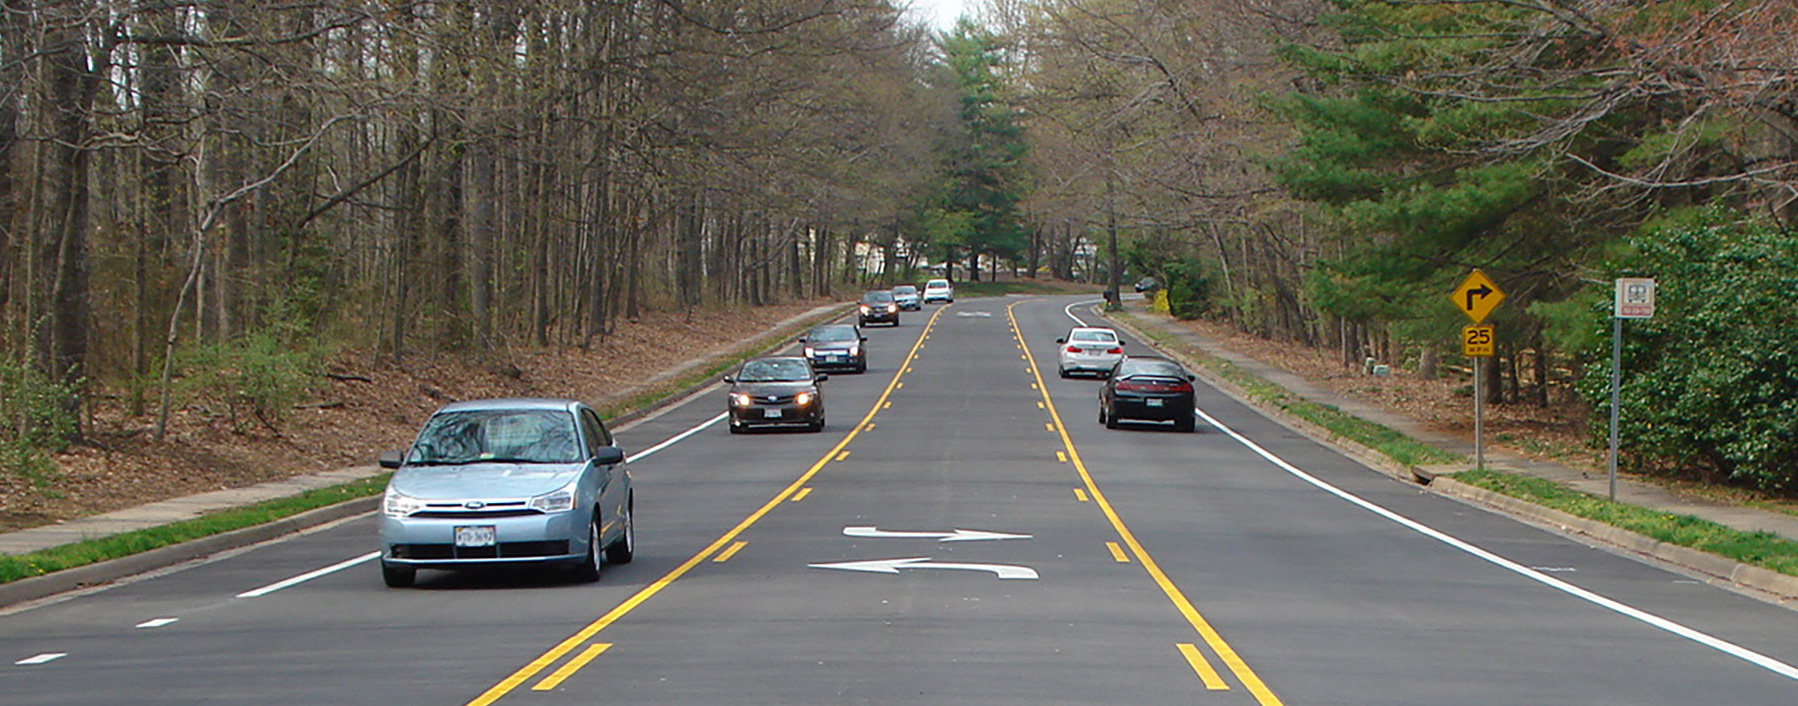 Two lane road with middle turn lanes